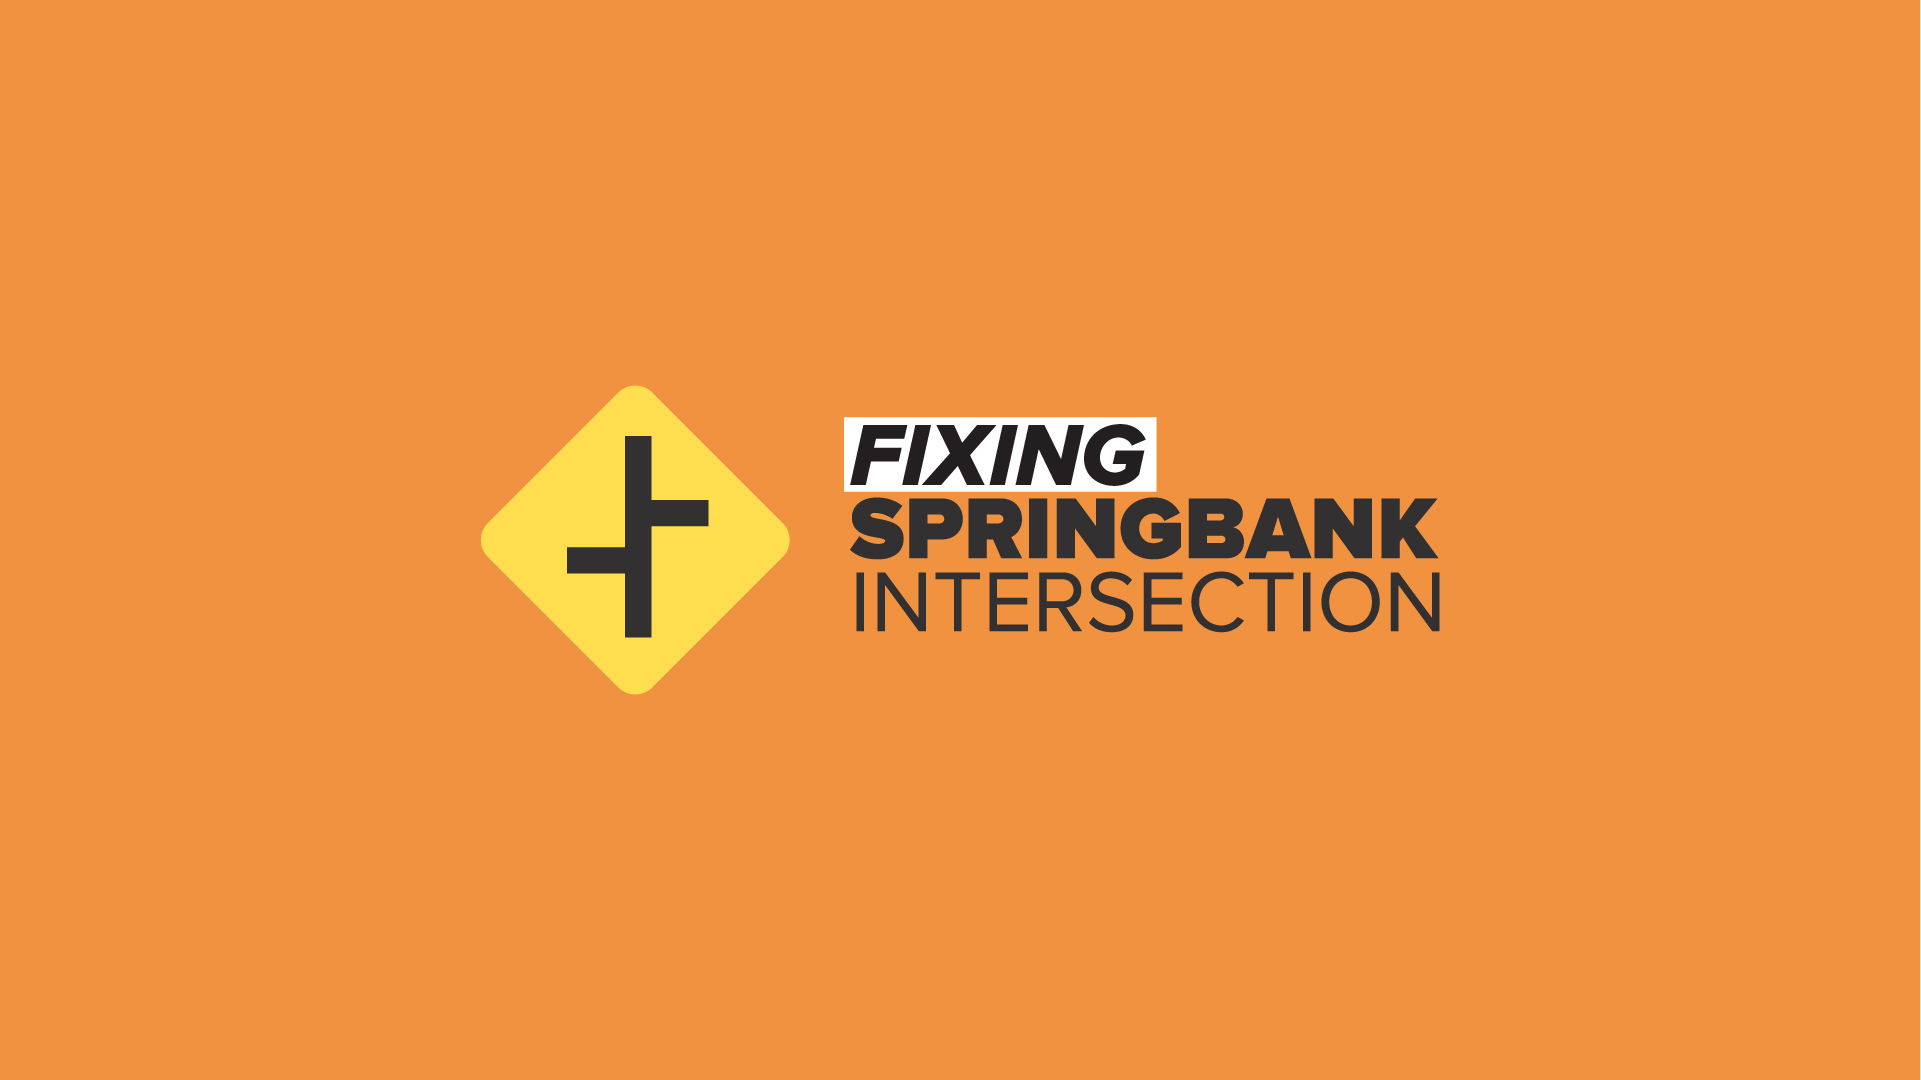 Change of traffic conditions at Springbank Intersection